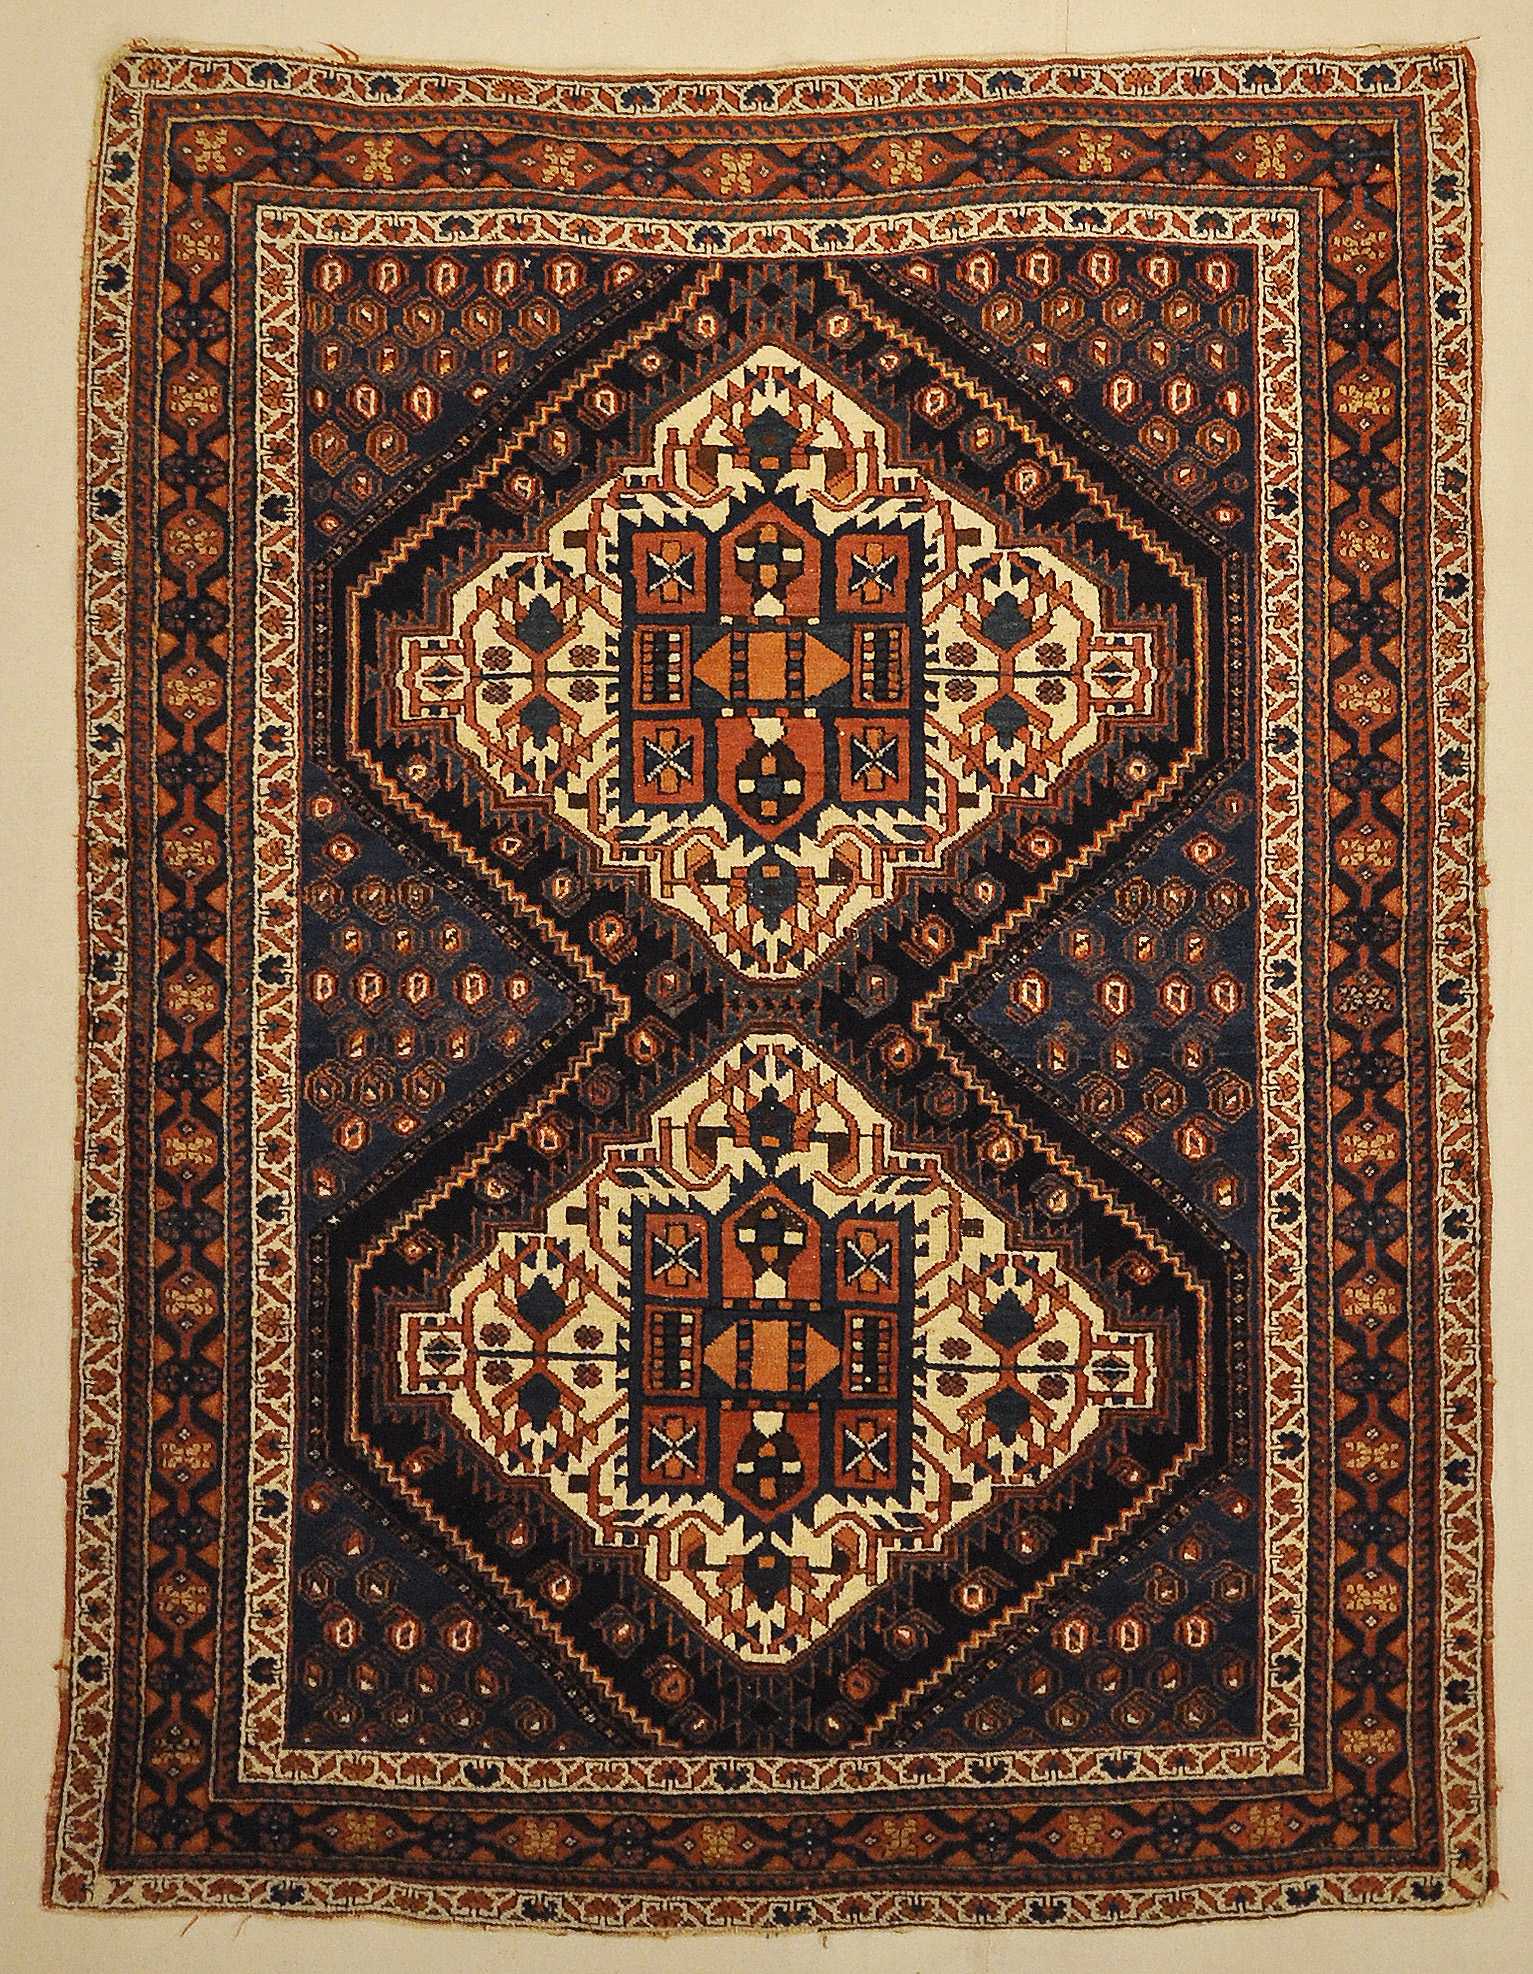 Antique Persian Afshar Medallion Botteh Genuine Woven Carpet Art Authentic Intricate Santa Barbara Design Center Rugs and More